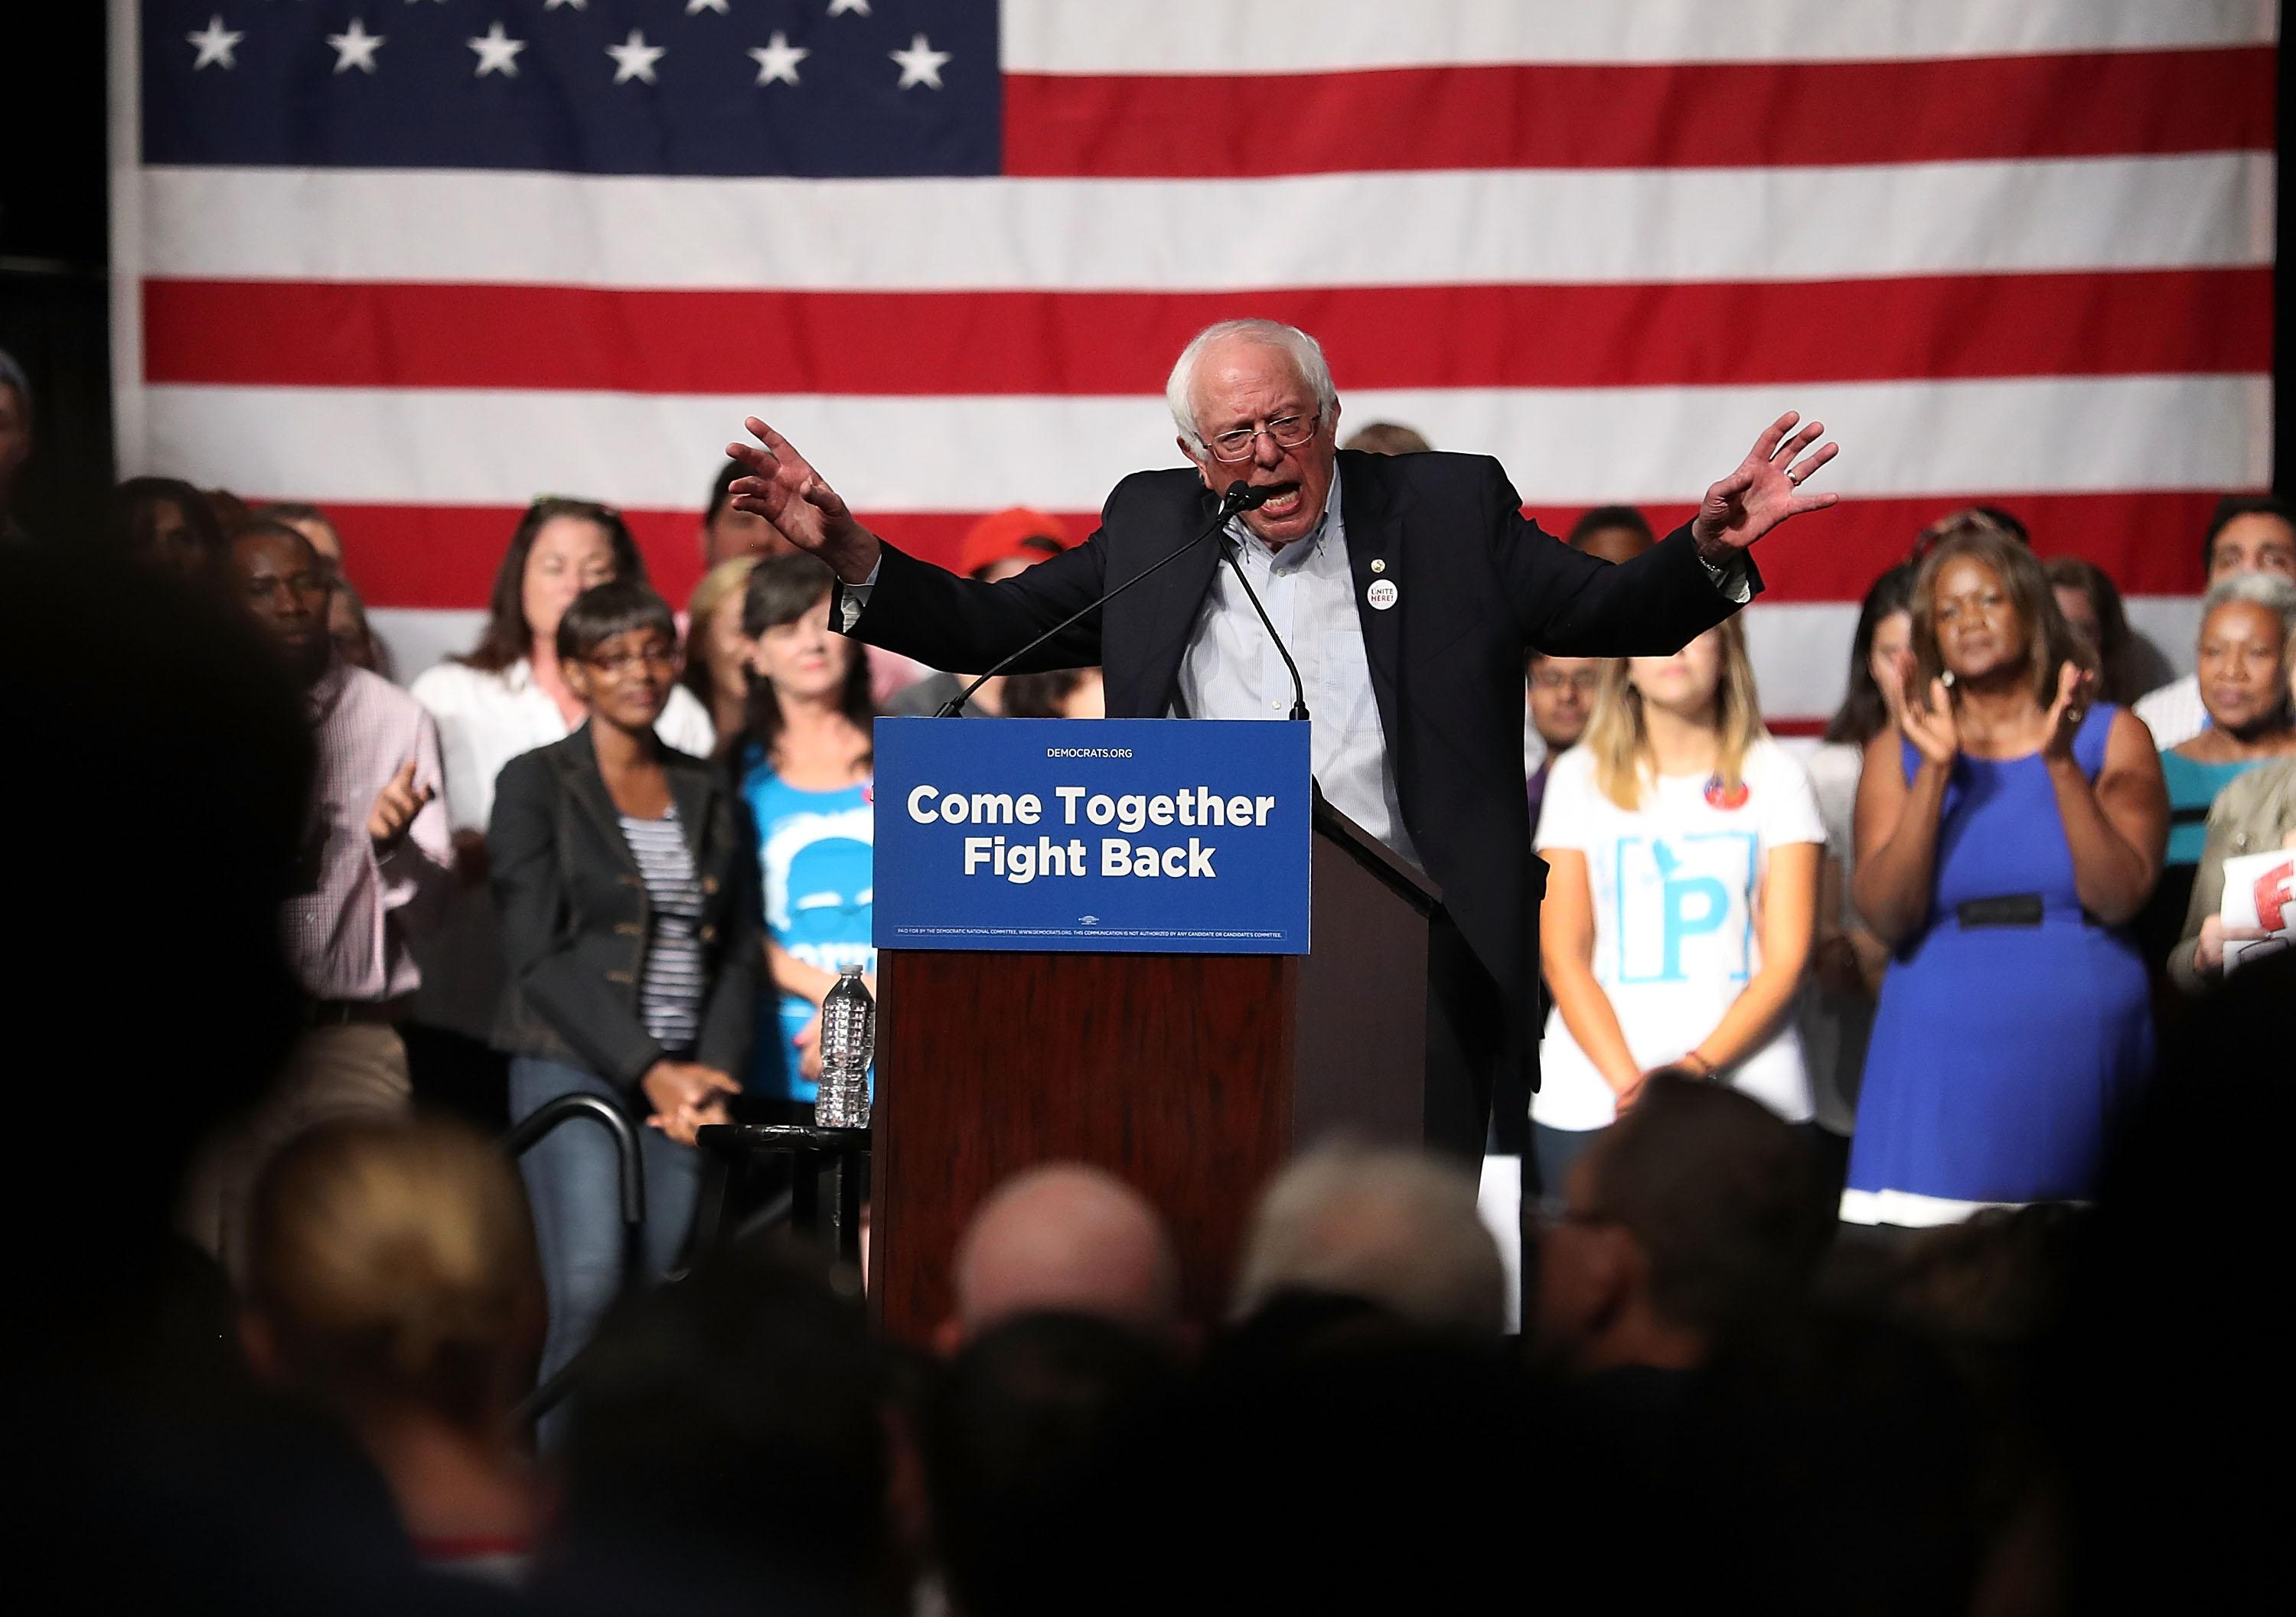 People Don't Get Why Bernie Sanders Is Speaking At The Women's Convention